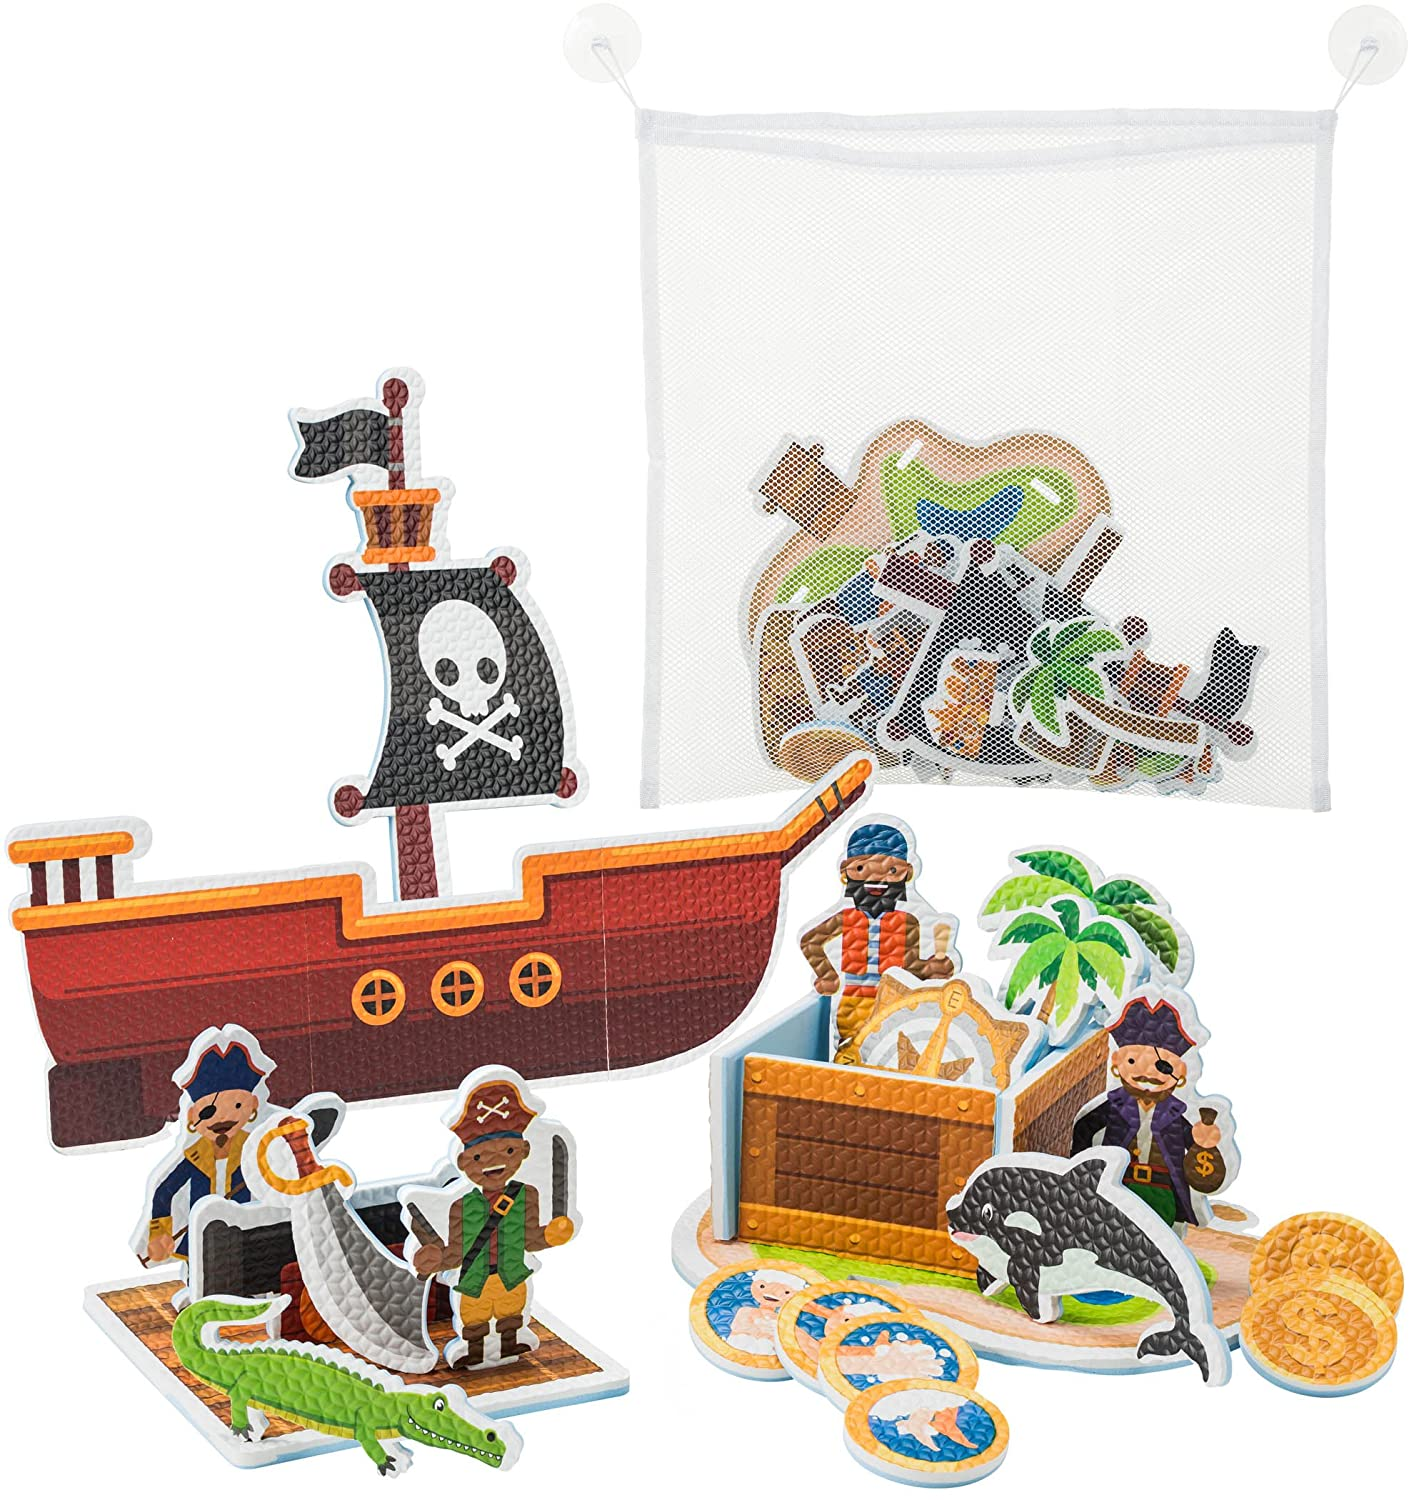 Learn & Climb Interactive Bath Toys for Boys - Play and Build Your Own Pirate Ship. For Boys ages 2-3-4-5, Toddlers and Kid - Plus Bath Toy Organizer and Bath Chore System